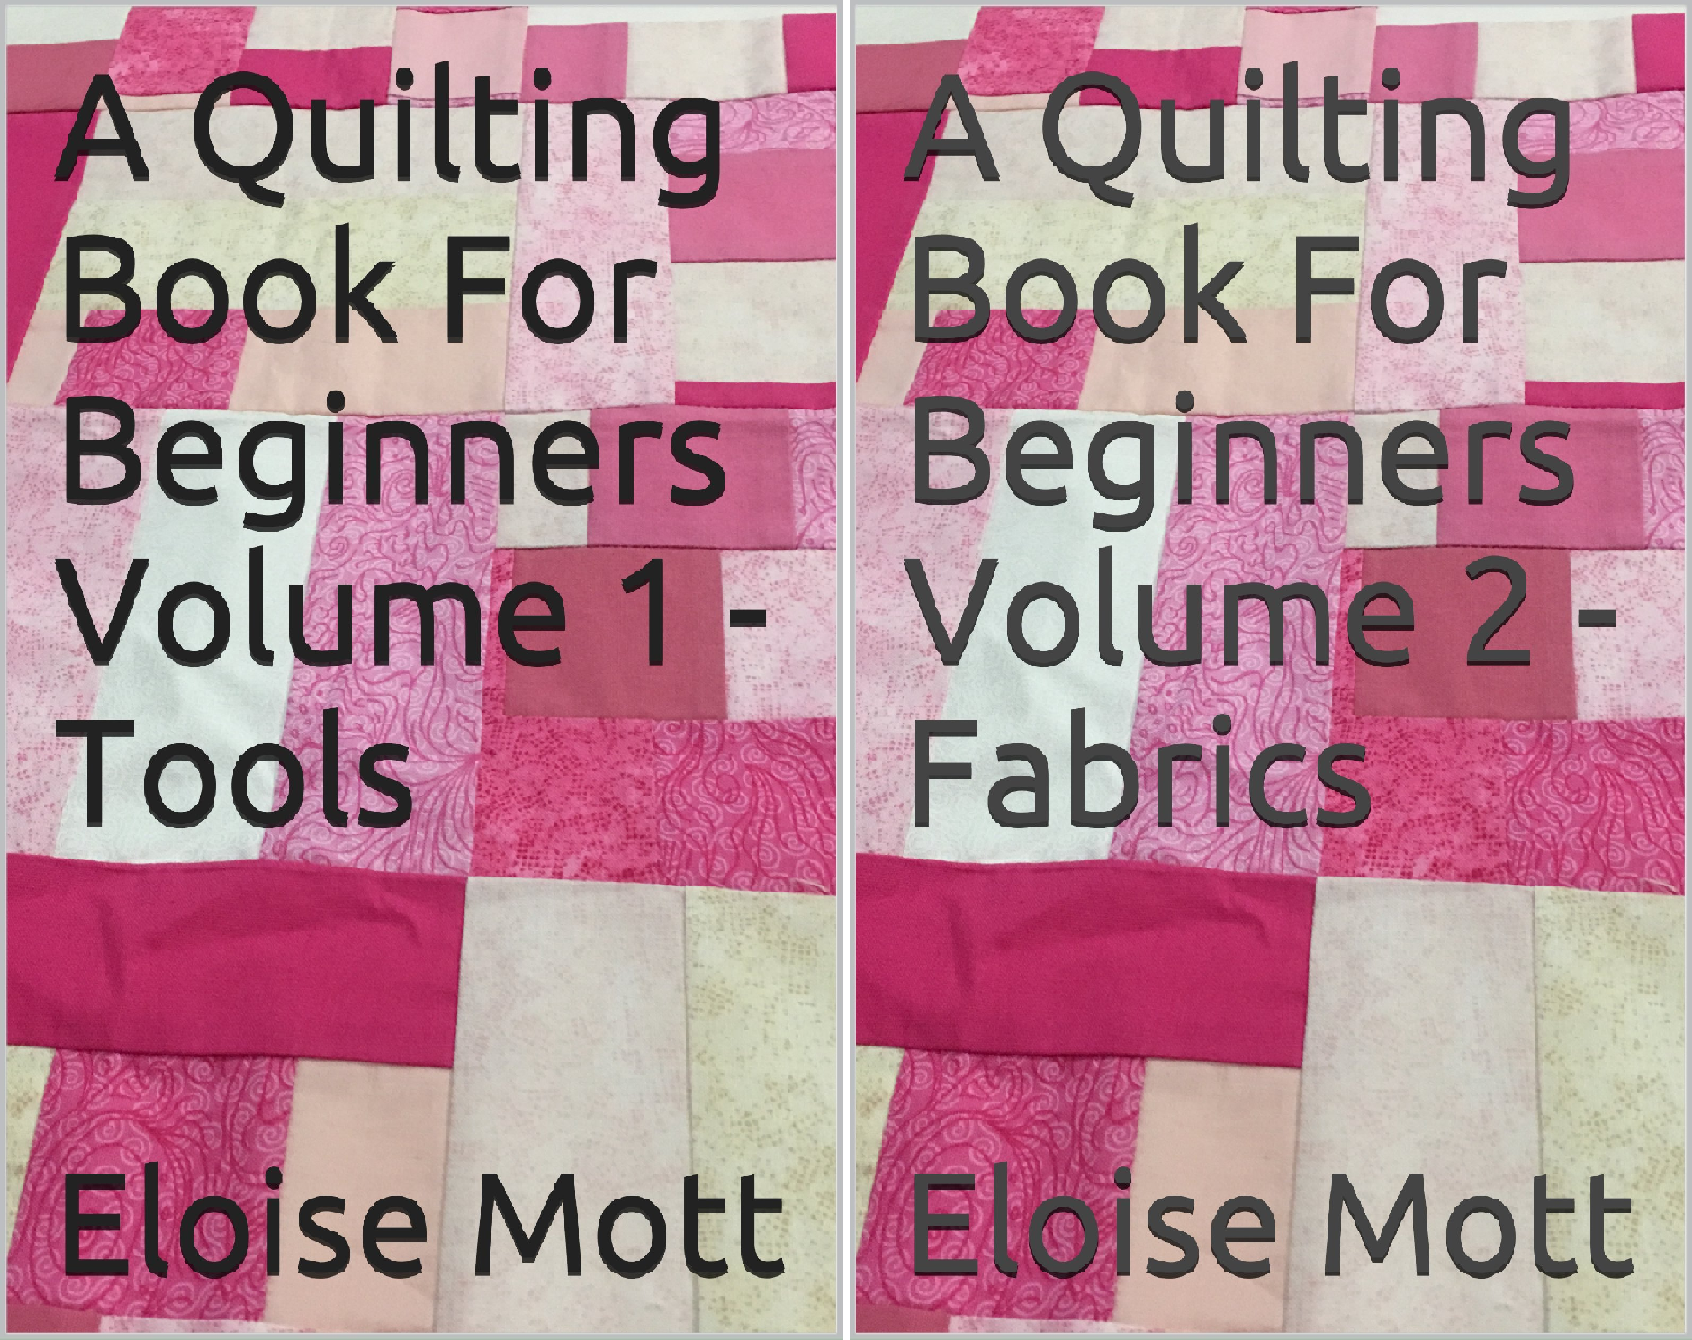 Quilting For Beginners (2 Book Series)